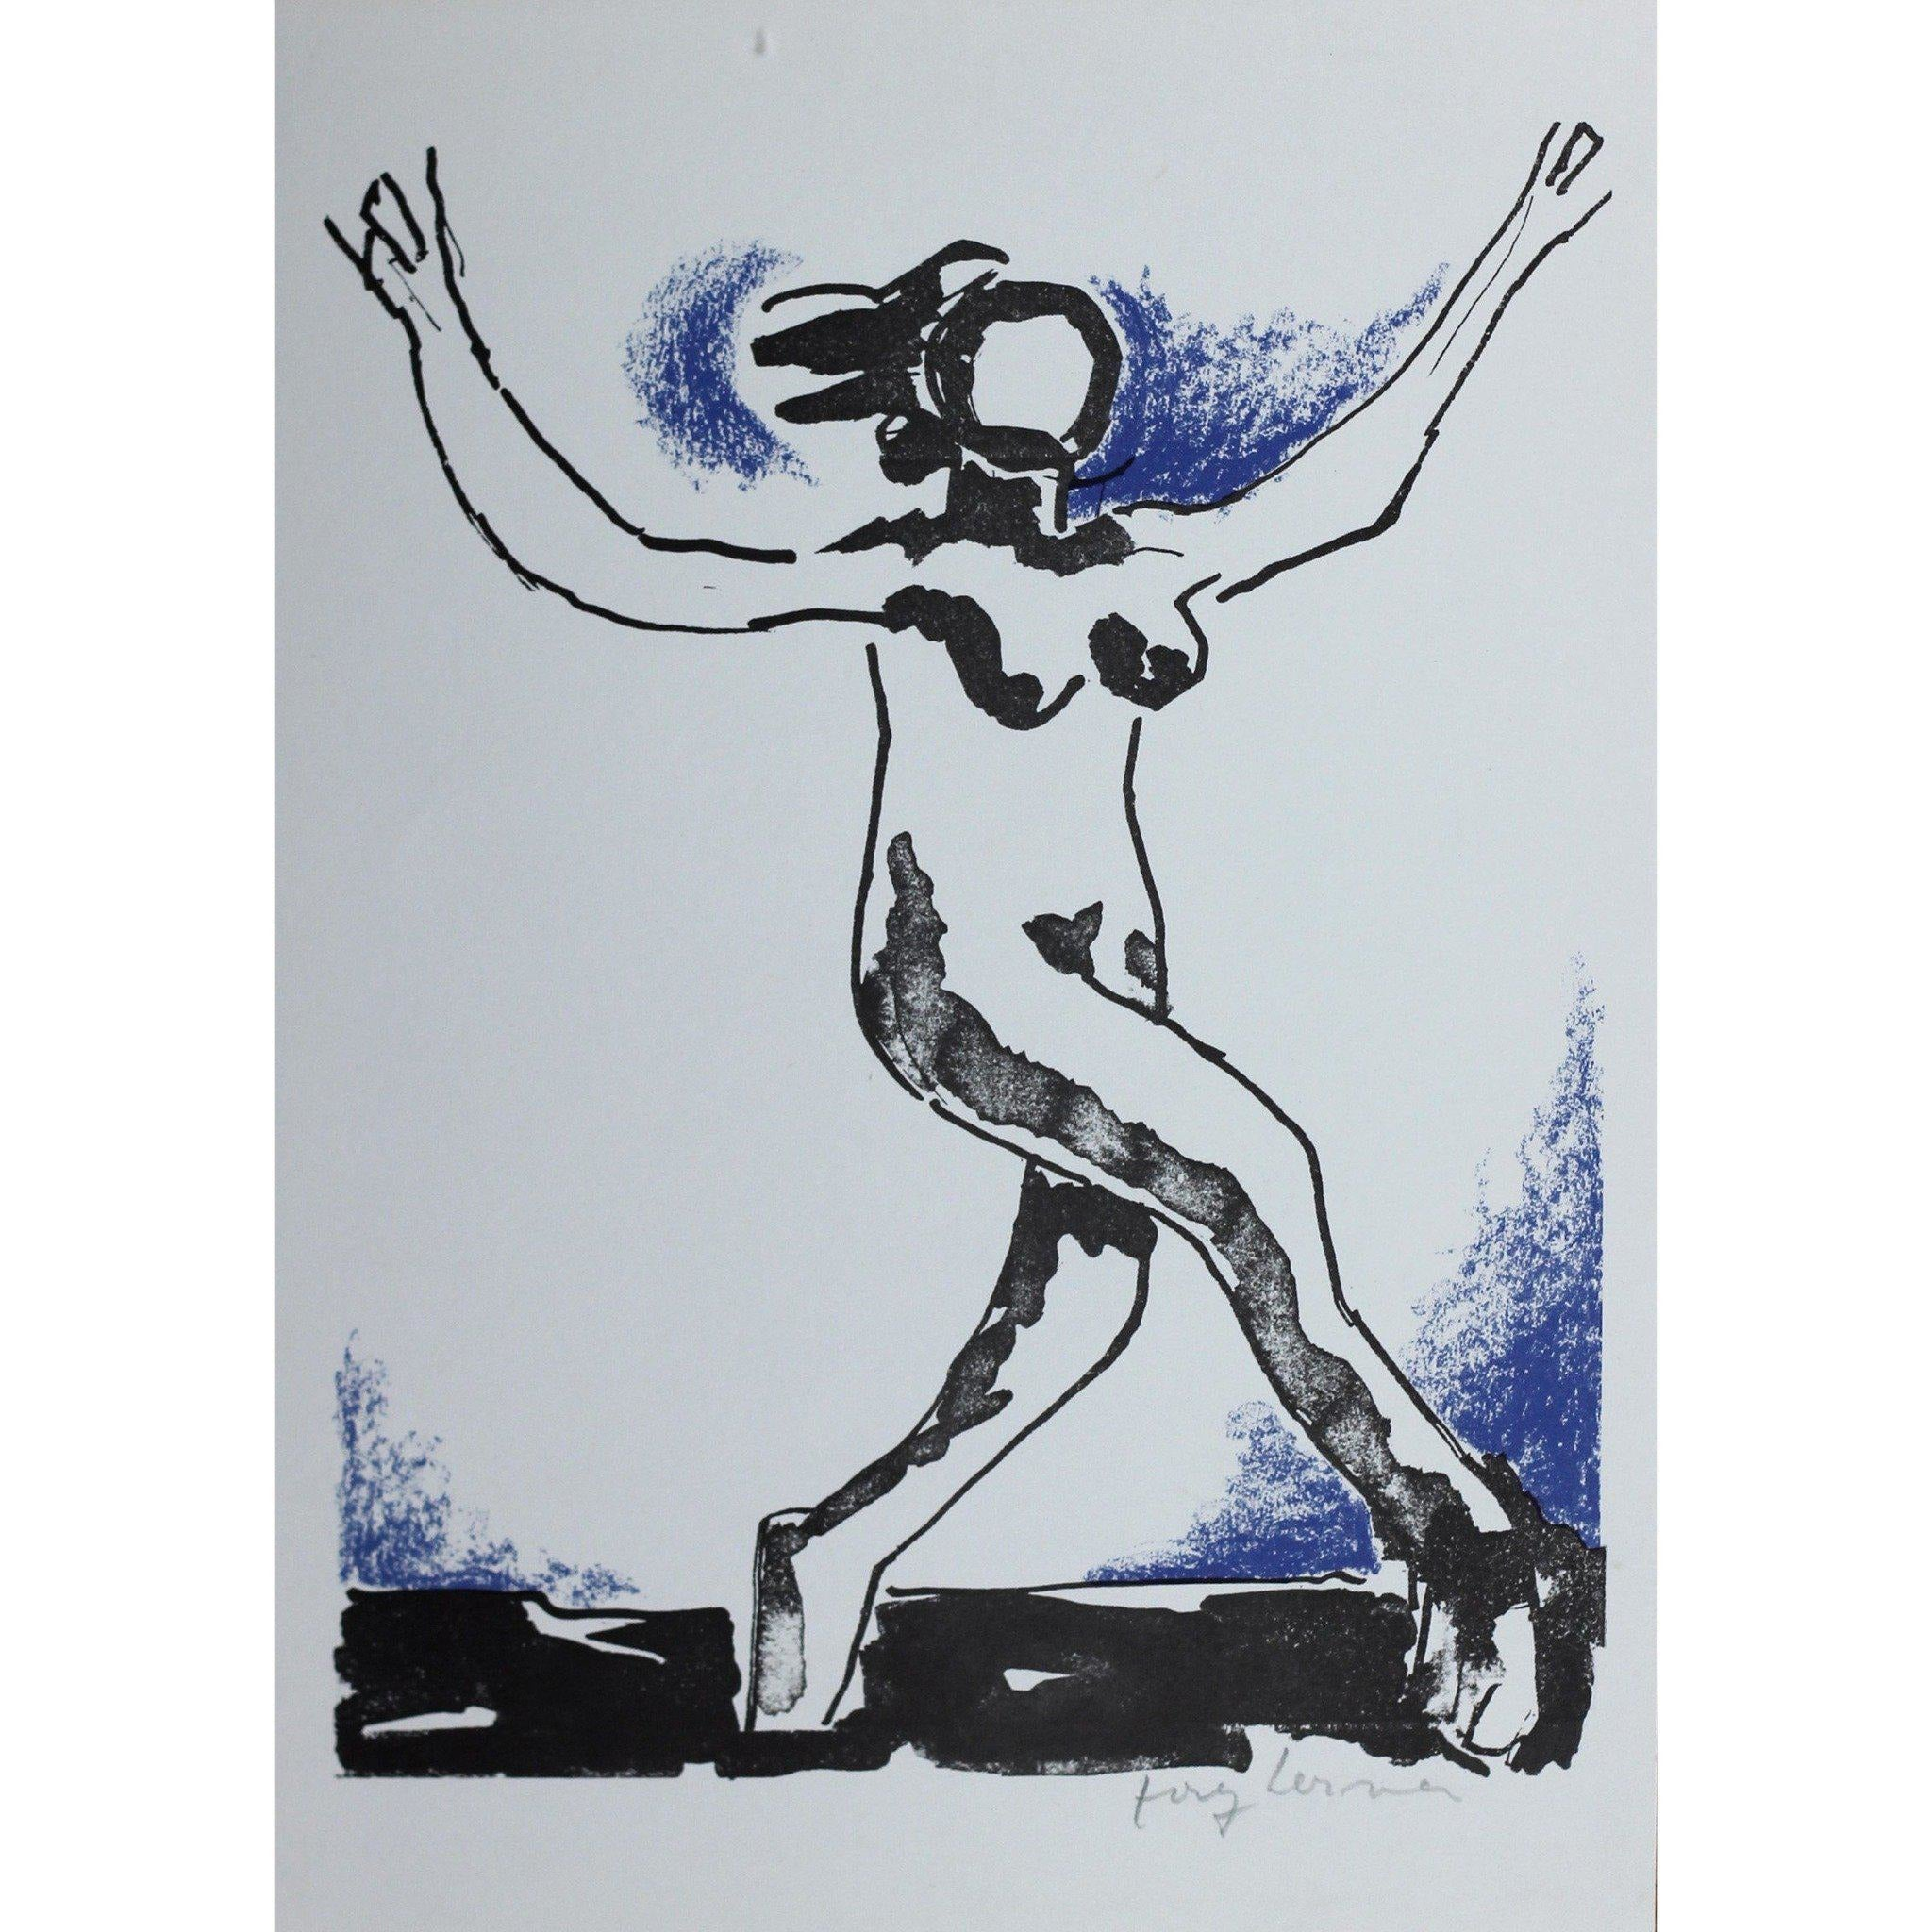 Josef Herman Catullus, Dancing girl